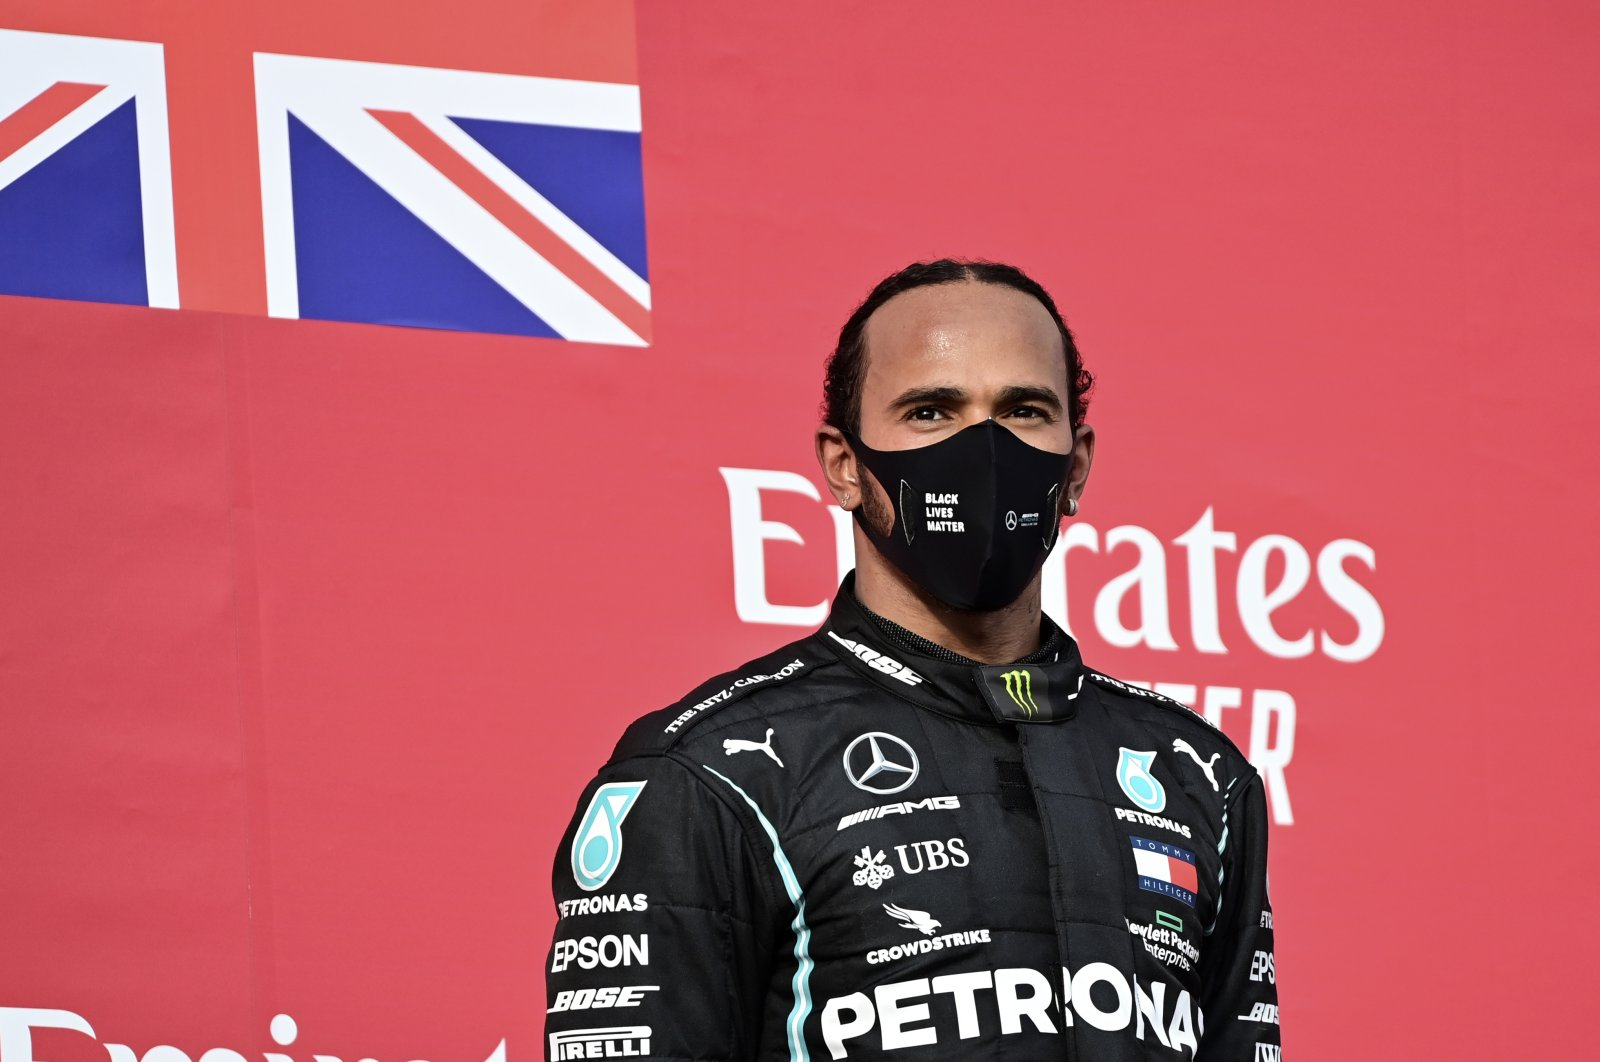 Mercedes driver Lewis Hamilton stands on the podium after winning the F1 Emilia Romagna GP, in Imola, Italy, Nov.1, 2020. (AP Photo)